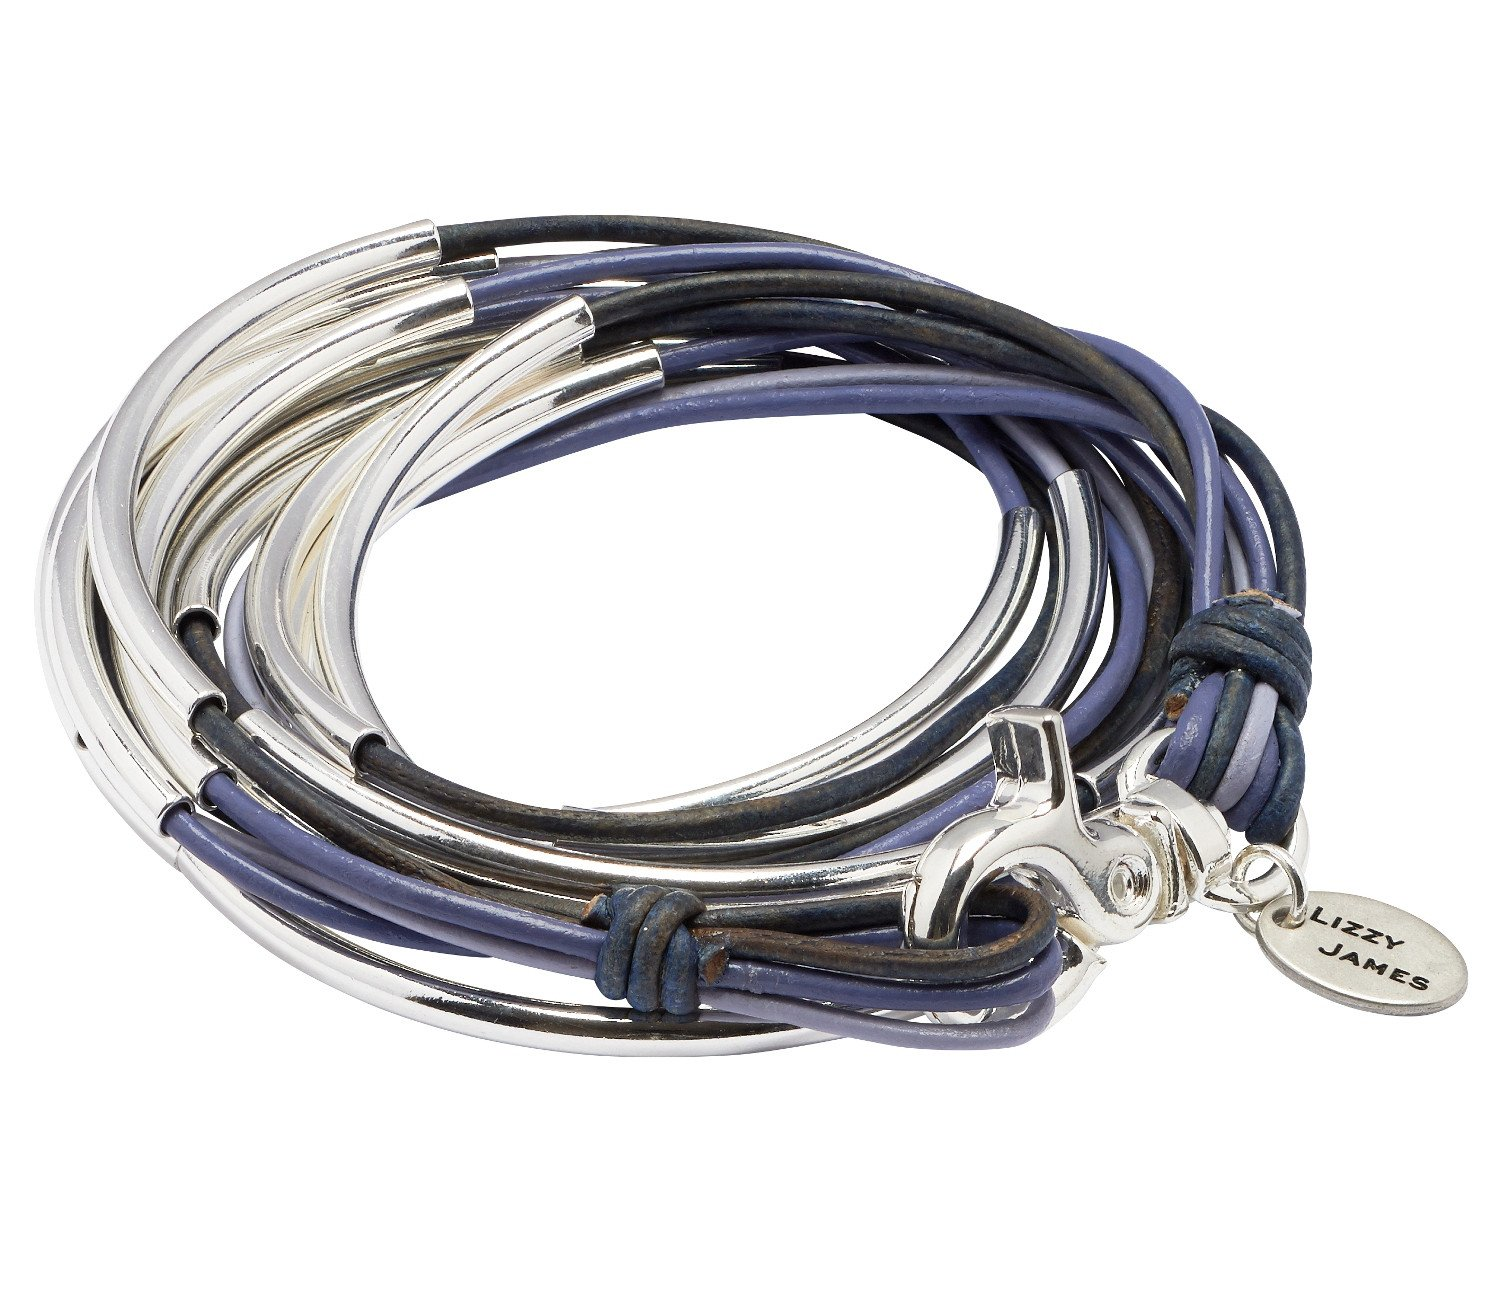 Lizzy Too 5 Strand Blueberry Silverplate XLarge Bracelet Necklace with Tricolor Berry Leather Wrap by Lizzy James